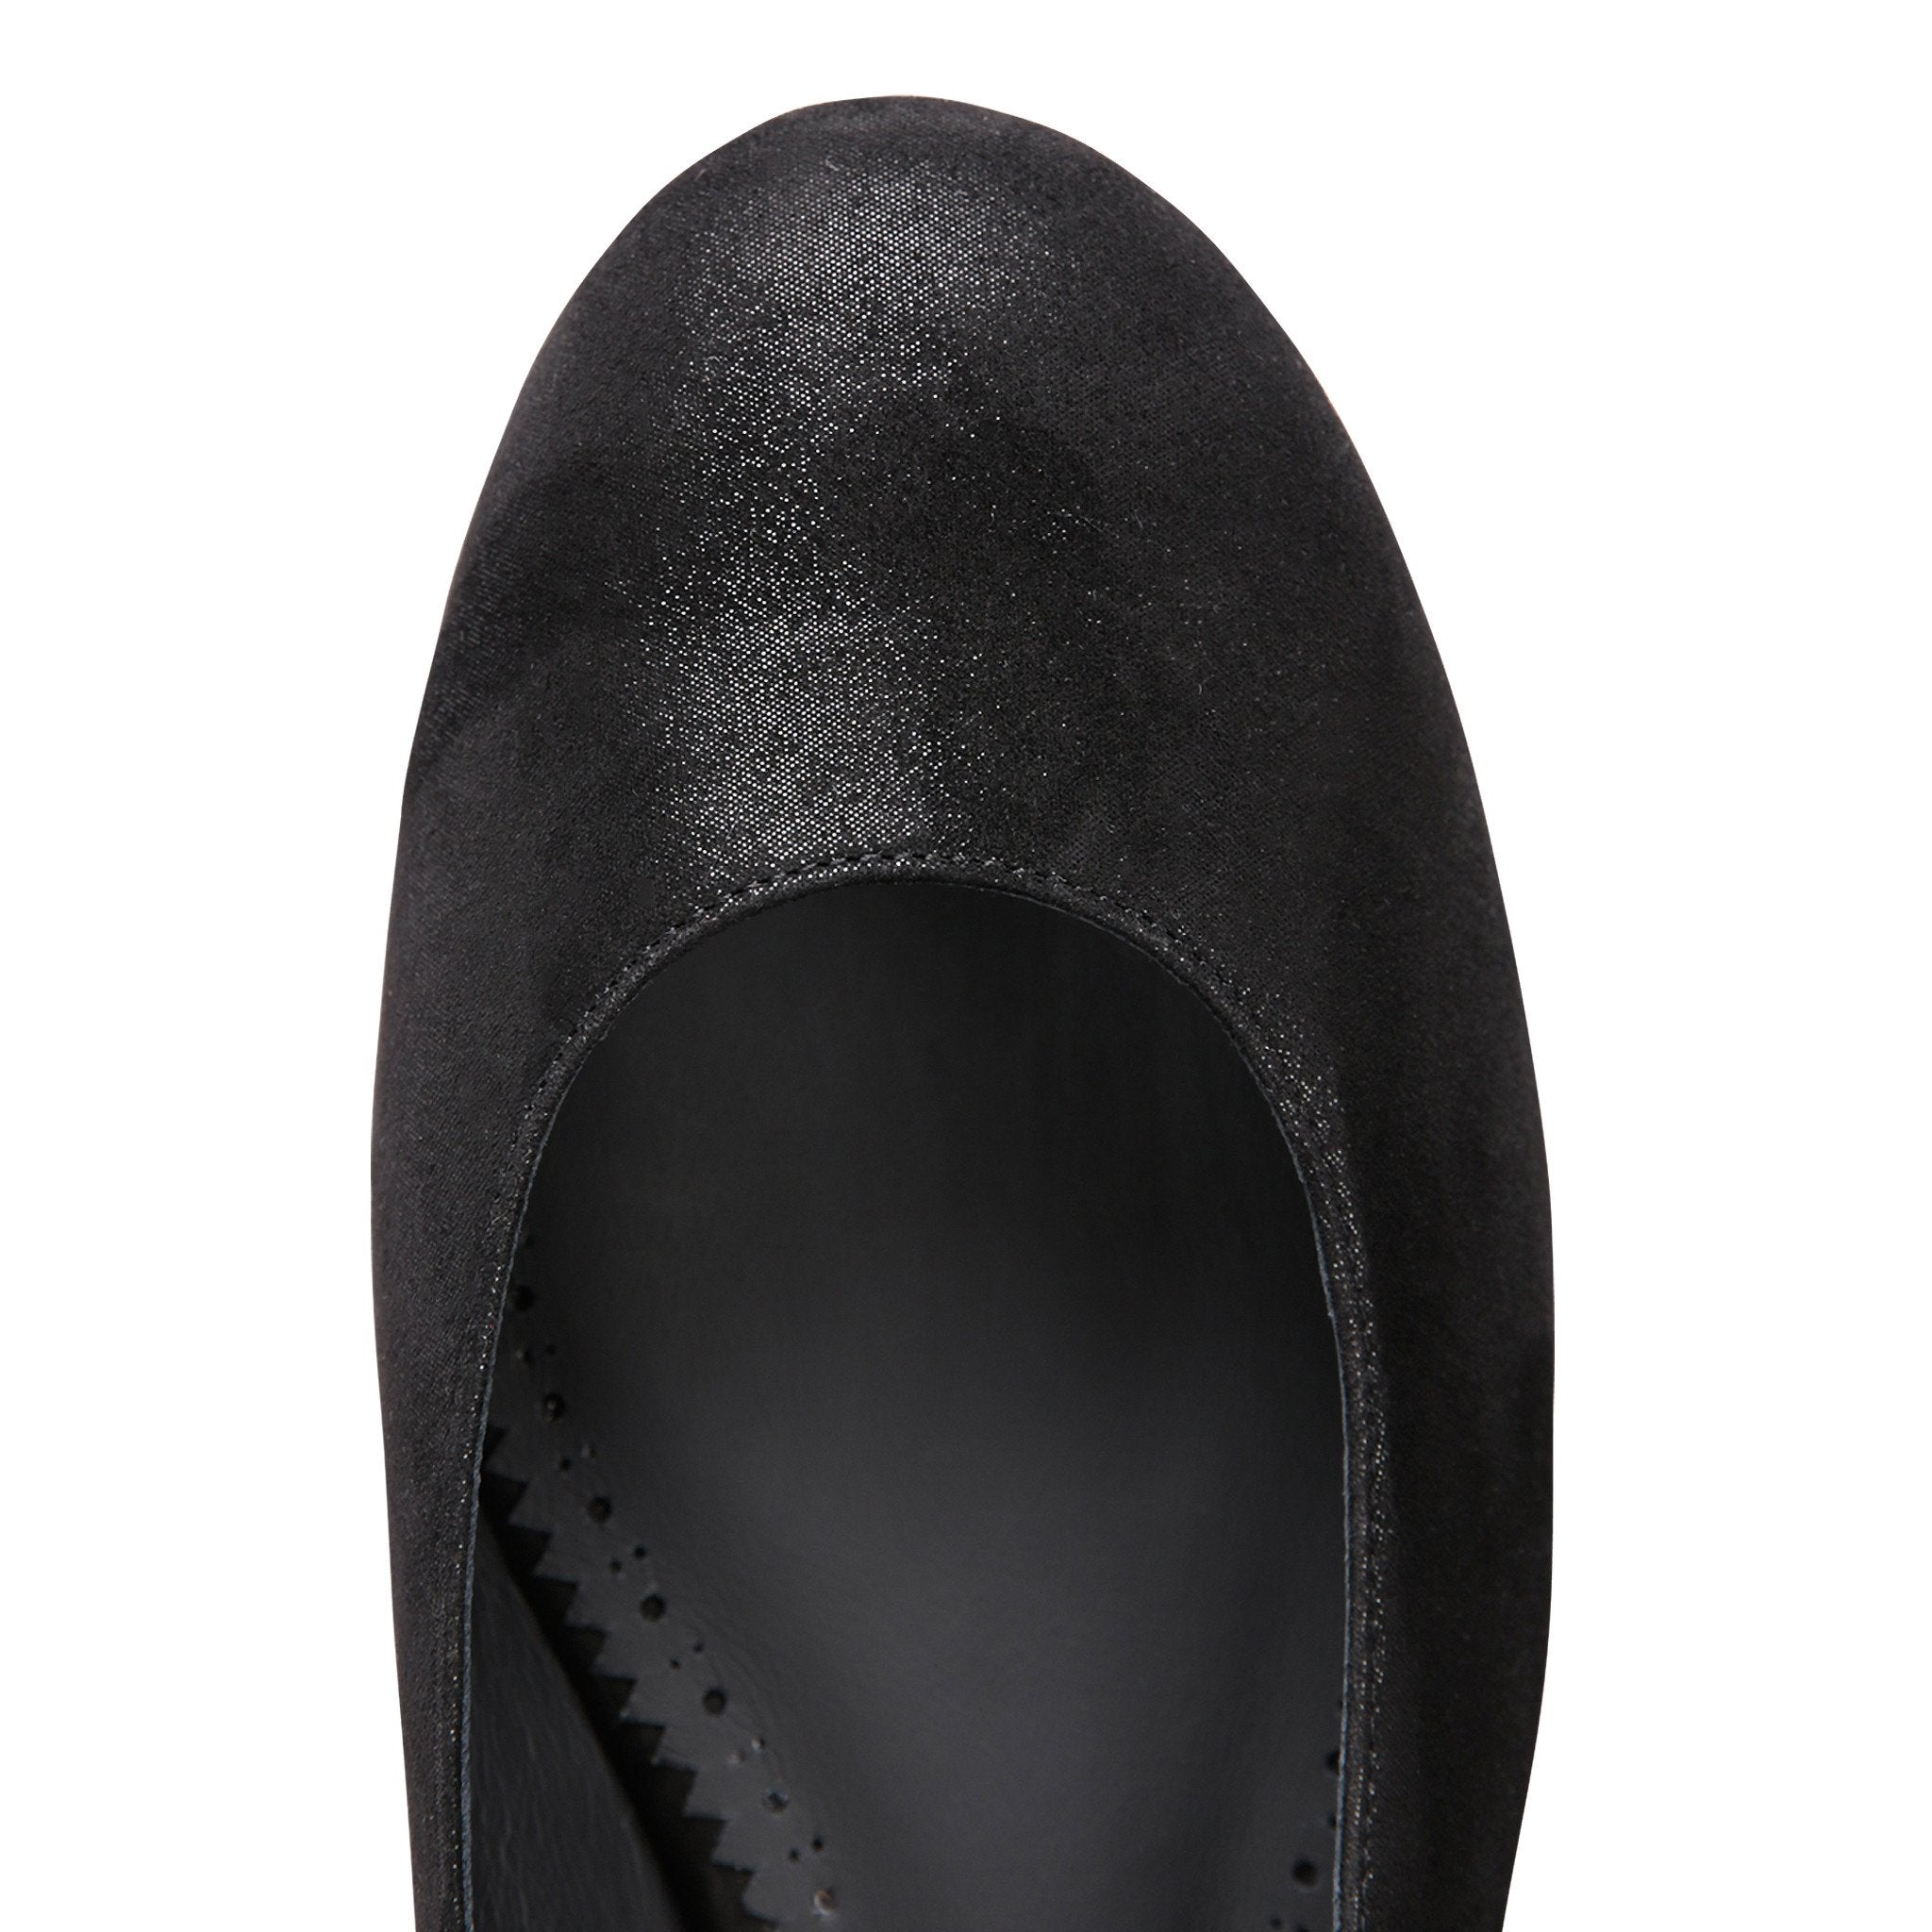 ROMA - Hydra Nero + Patent Back, VIAJIYU - Women's Hand Made Sustainable Luxury Shoes. Made in Italy. Made to Order.